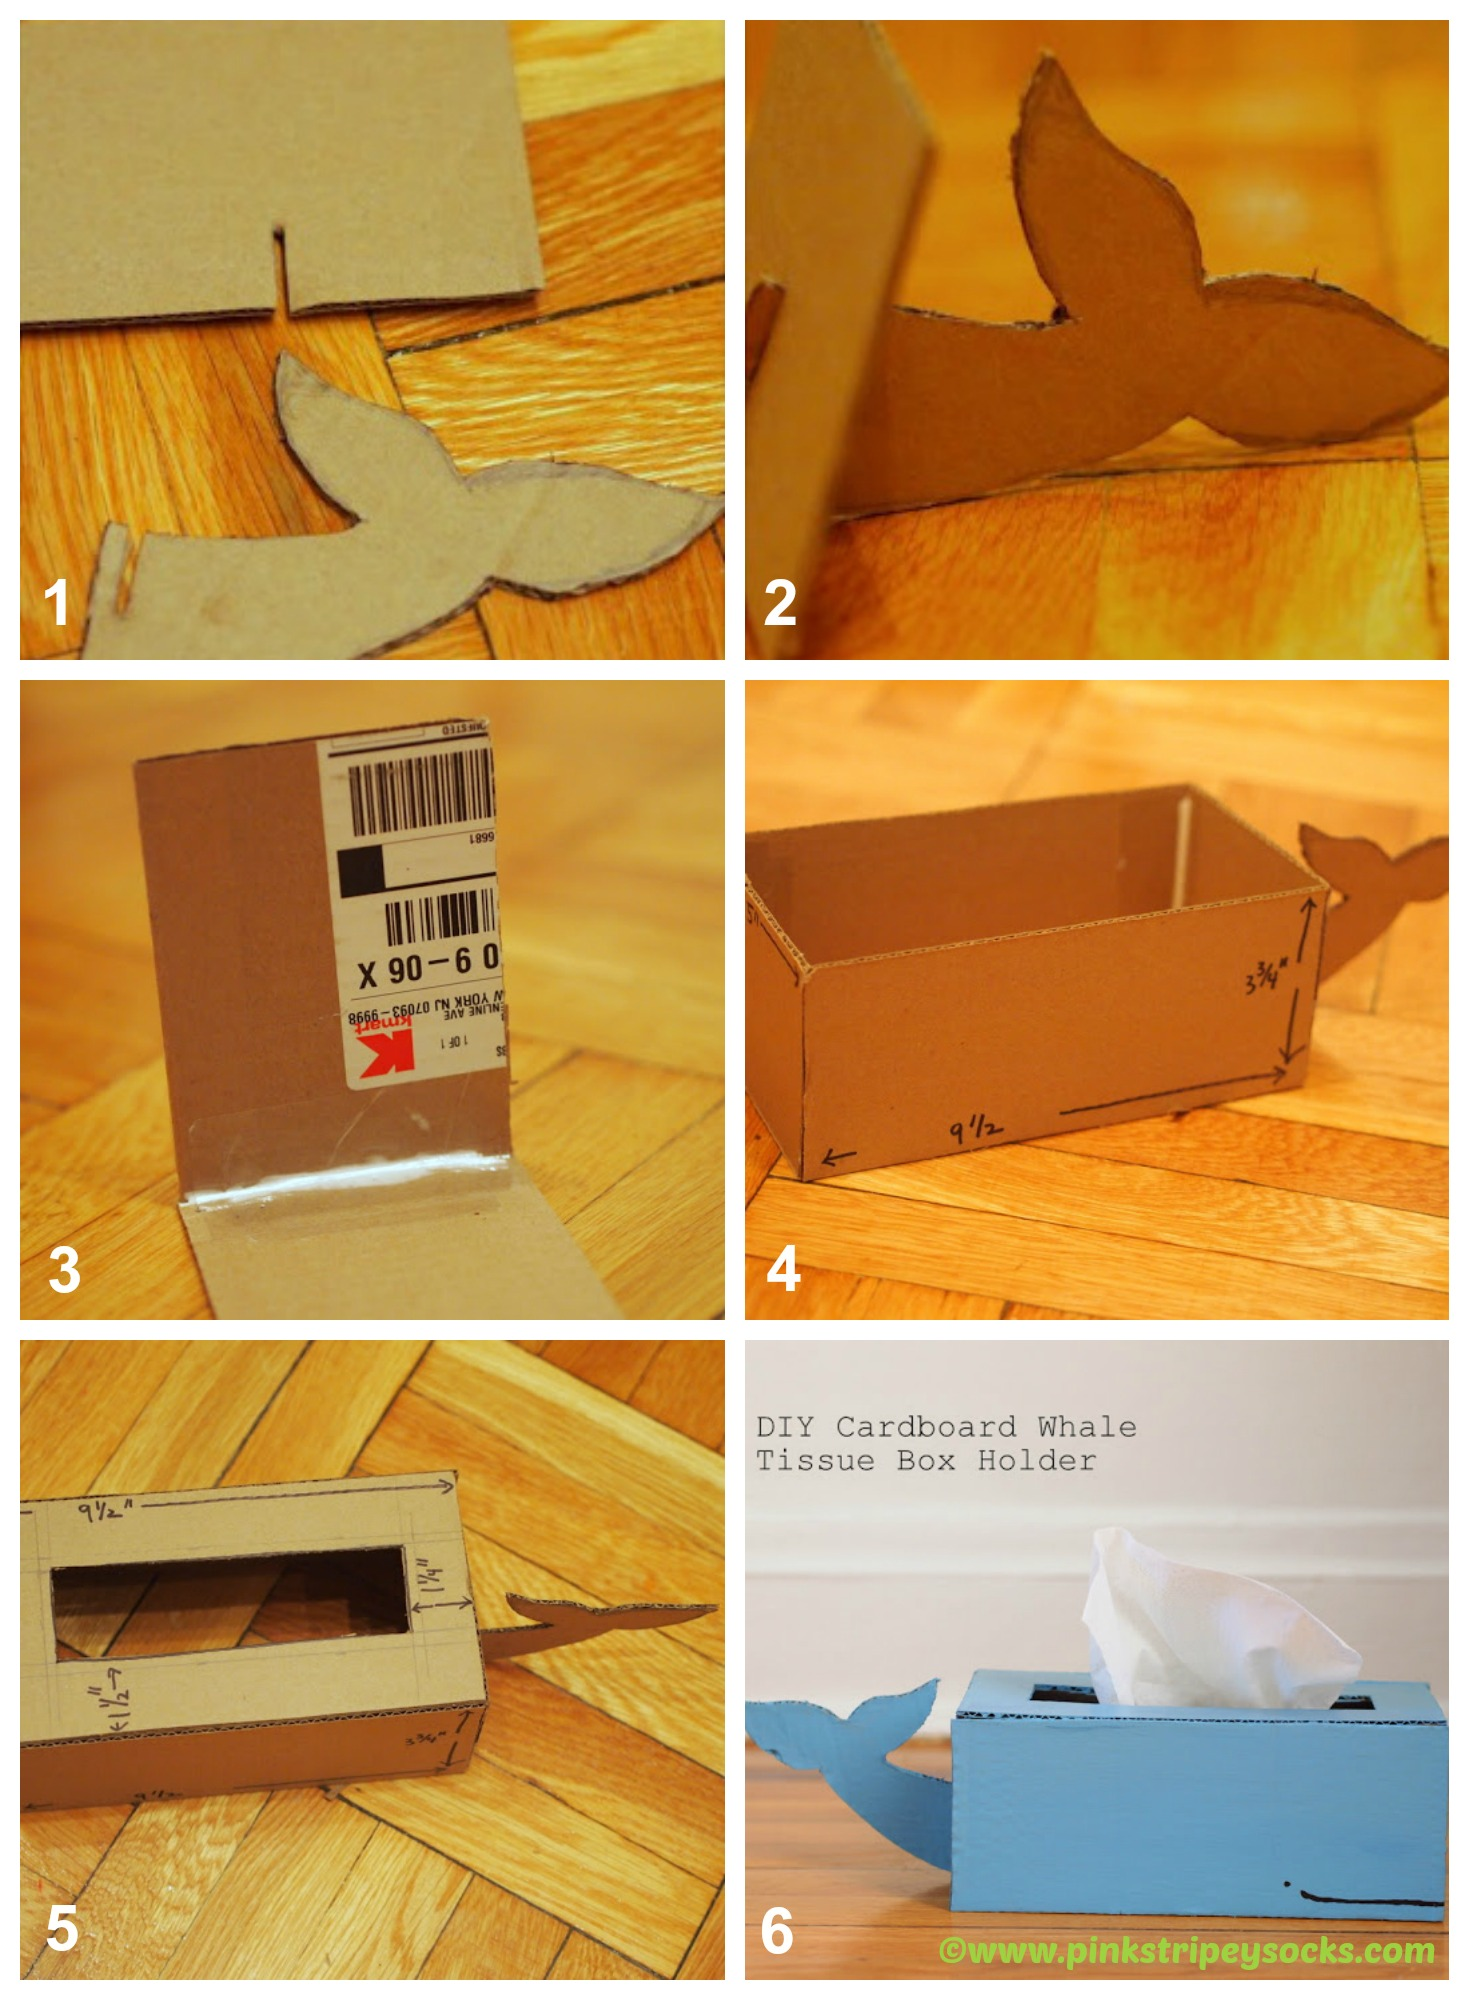 Cardboard whale tissue box holder diy home tutorials for How to make a house from cardboard box